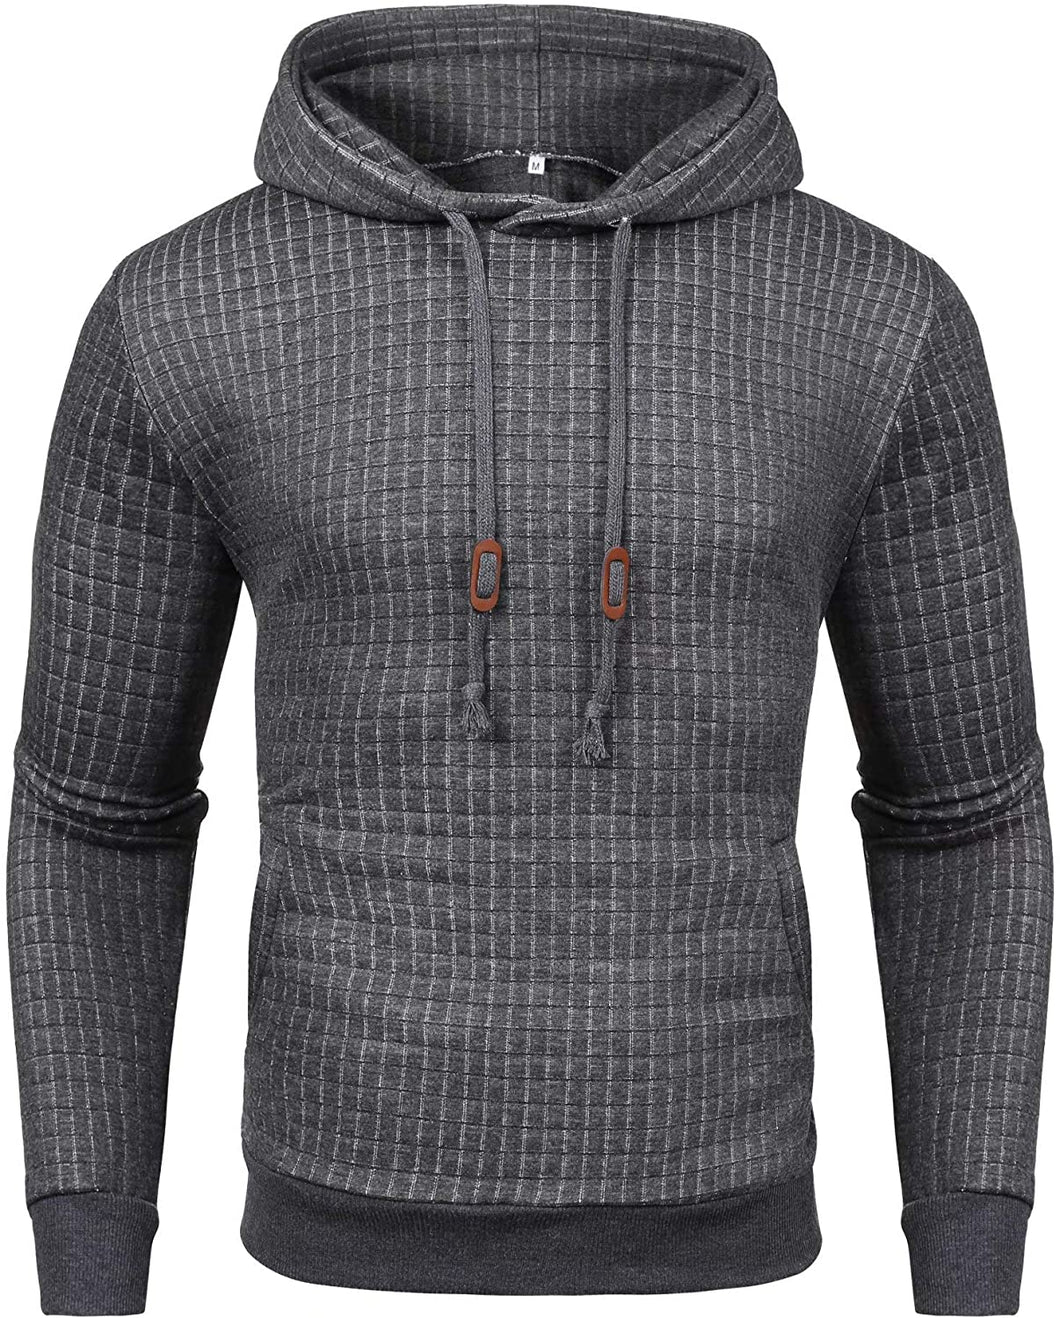 Men's Casual Pullover Hoodies Plaid Jacquard Long Sleeve Hooded Sweatshirt with Pocket